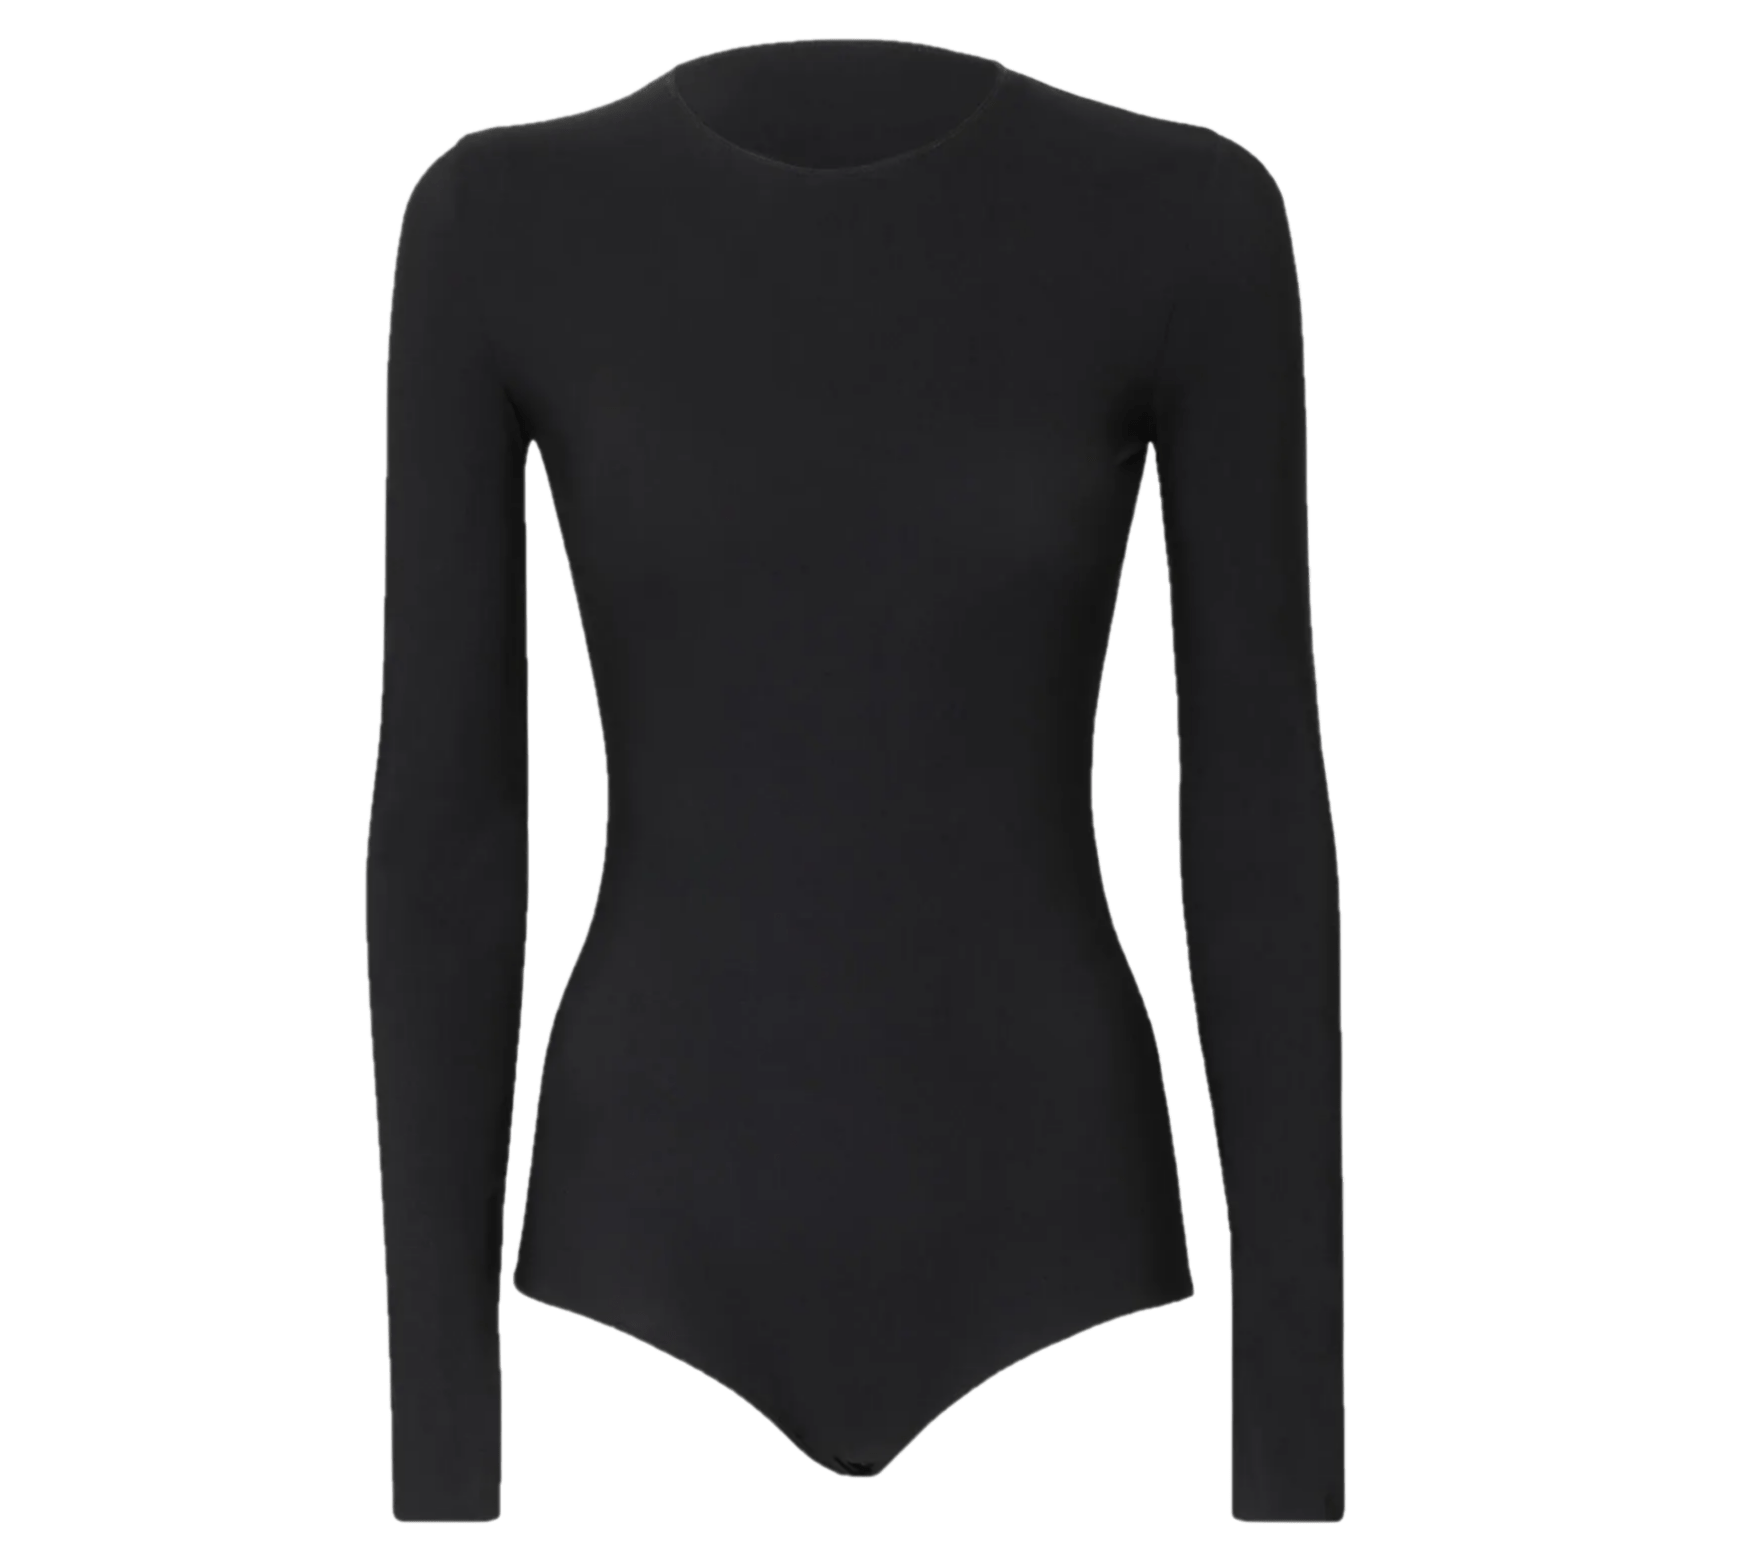 CMZ2005 Women's Basic Solid Bodysuit Leotard Top Long Sleeve Stretchy, Medium - MGworld